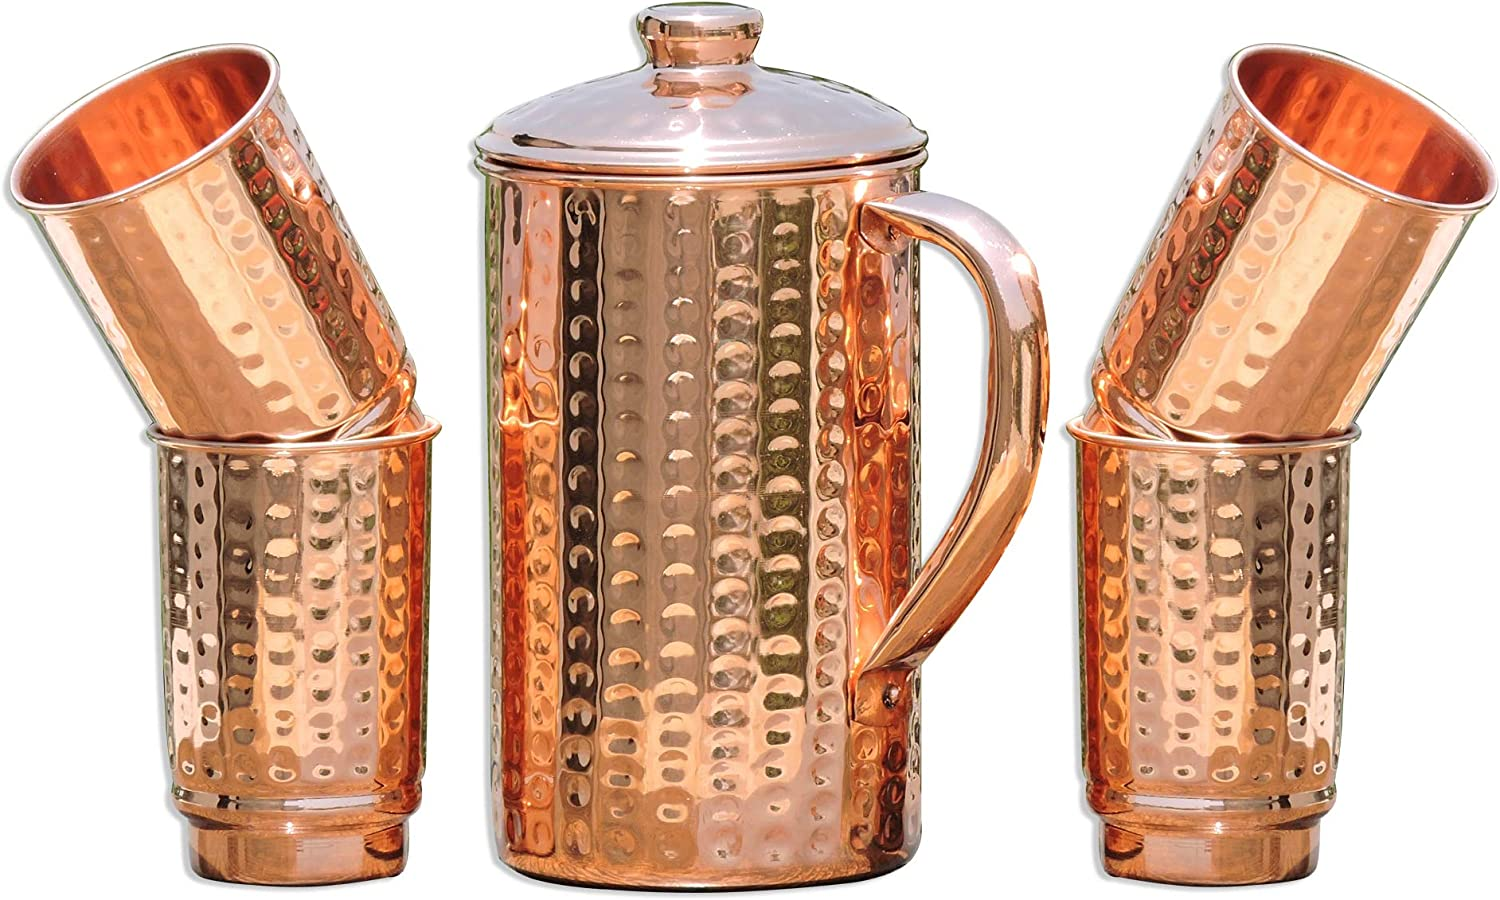 HealthGoodsIn - Pure Copper (99.74%) Hammered Pitcher with 4 Copper Tumblers | Hammered Copper Pitcher and Tumblers for Ayurveda Health Benefits